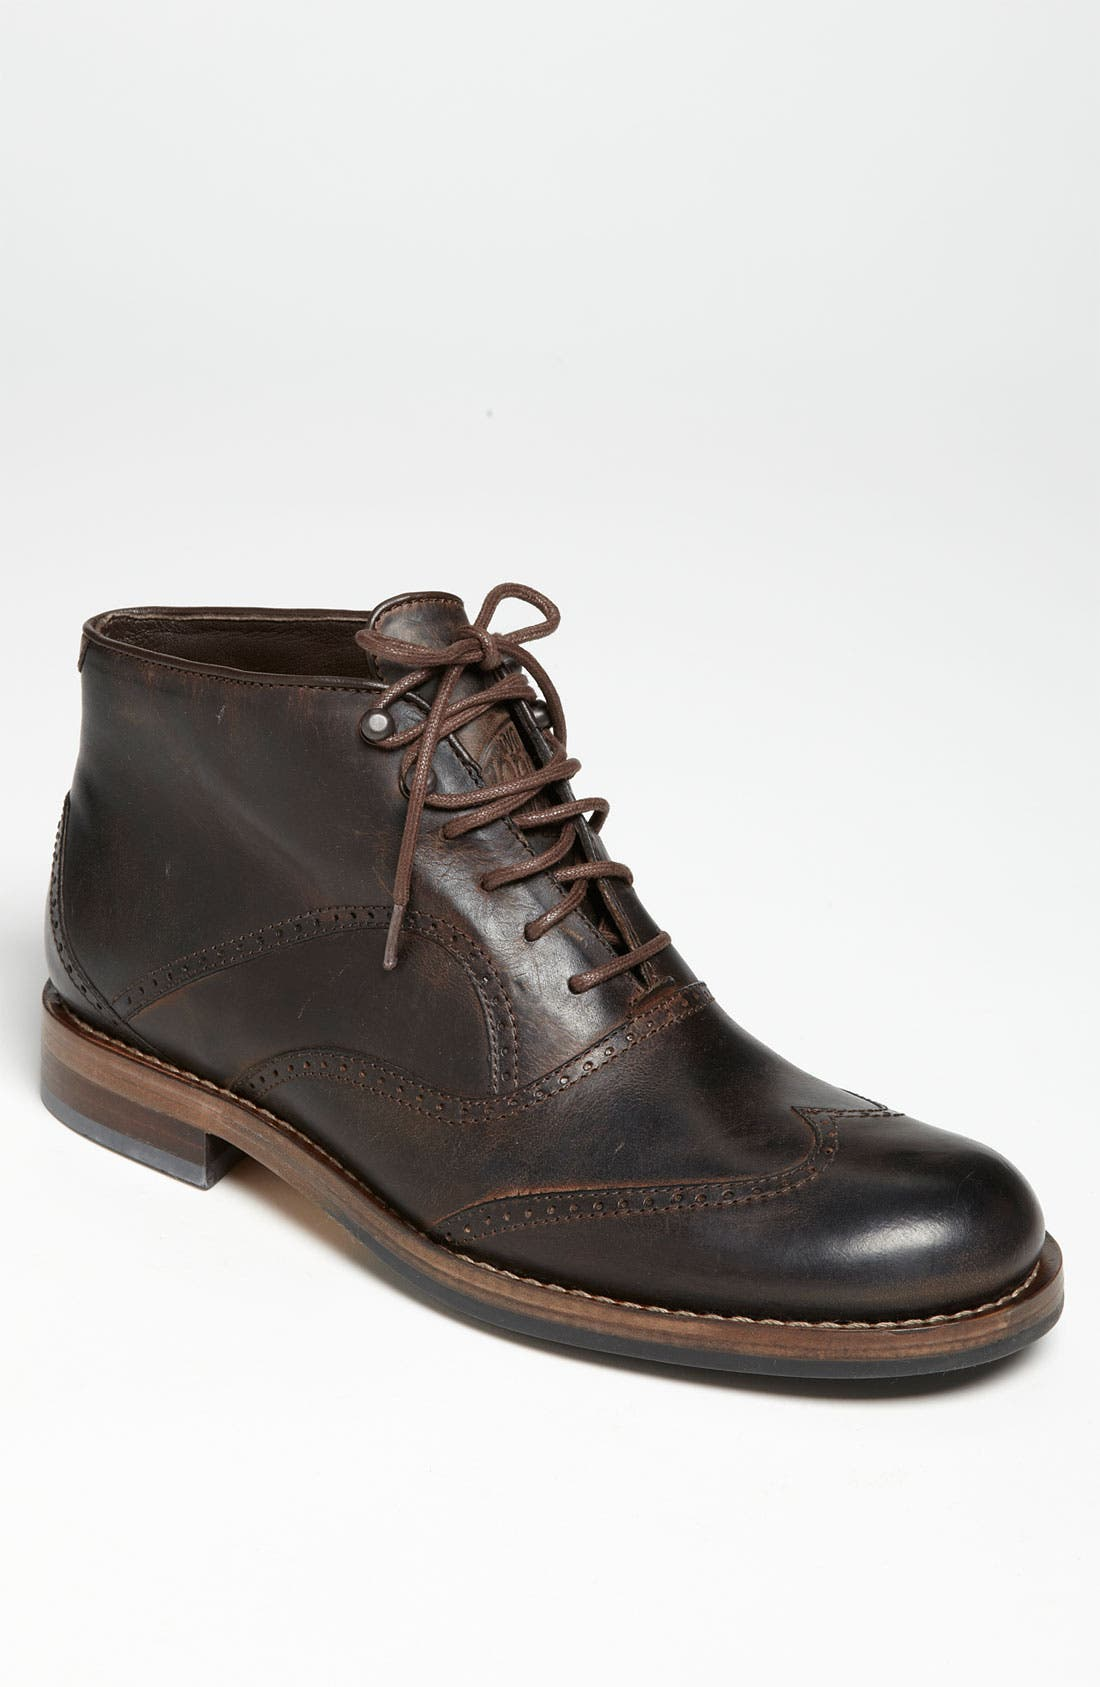 Main Image - Wolverine 'Wesley' Chukka Boot (Regular Retail Price: $294.00)